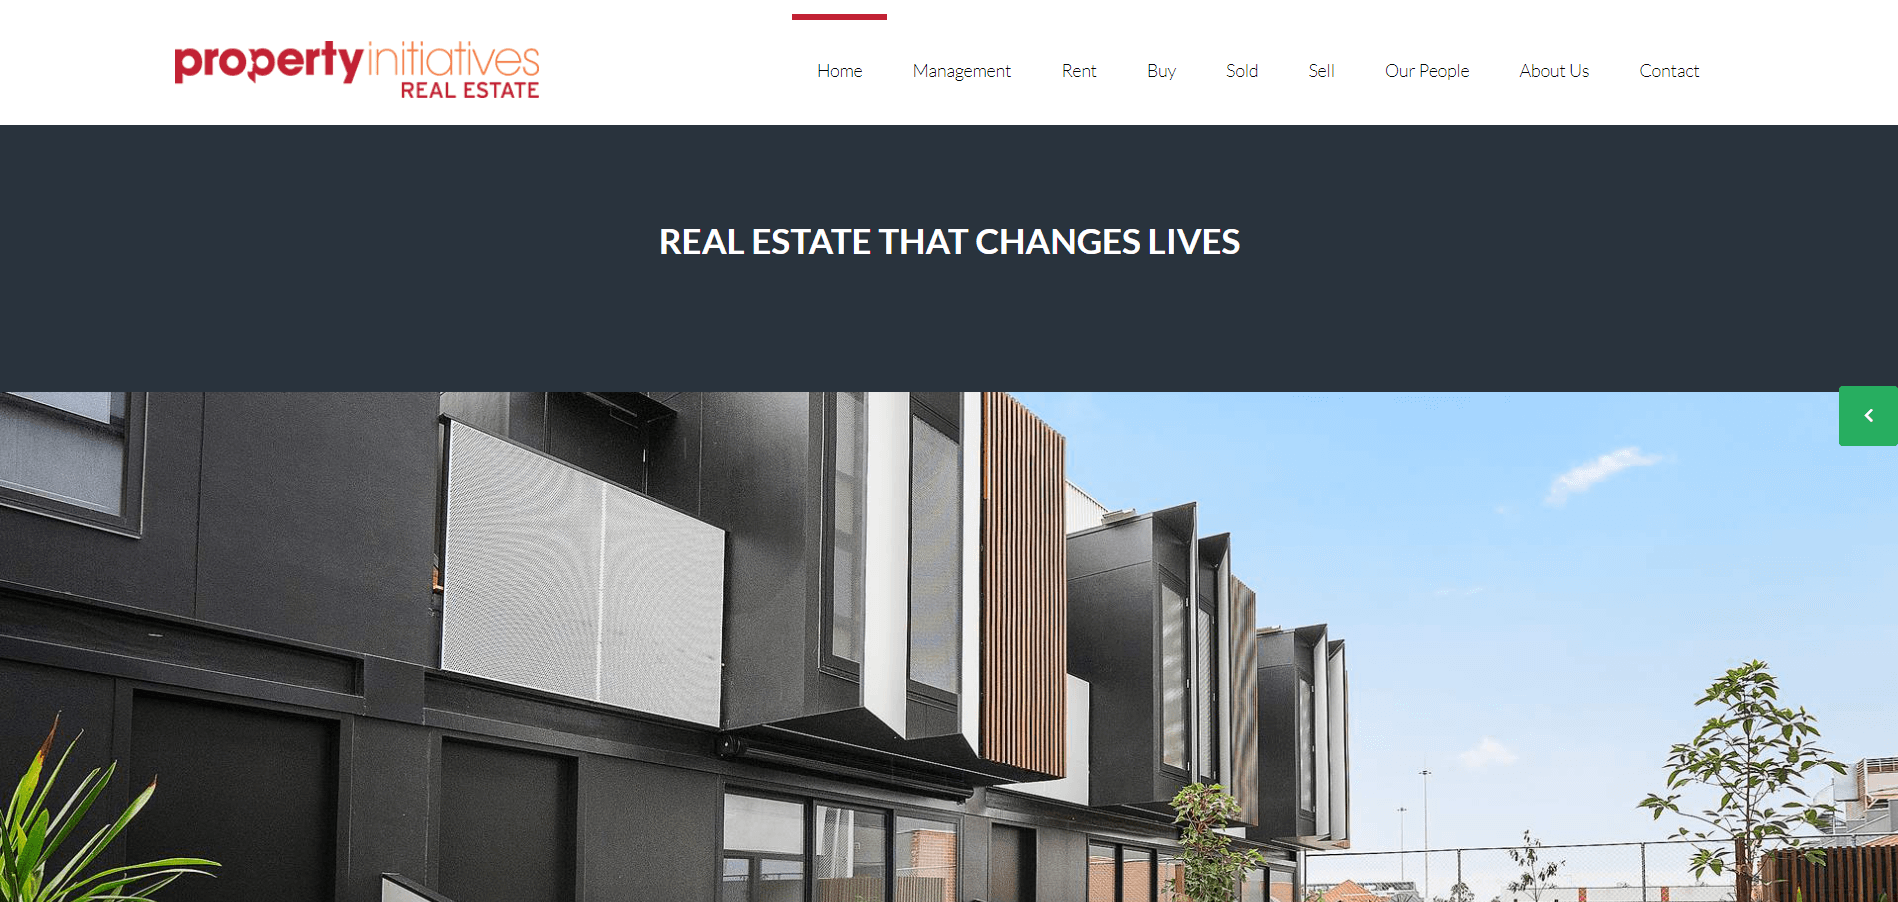 property initiatives real estate